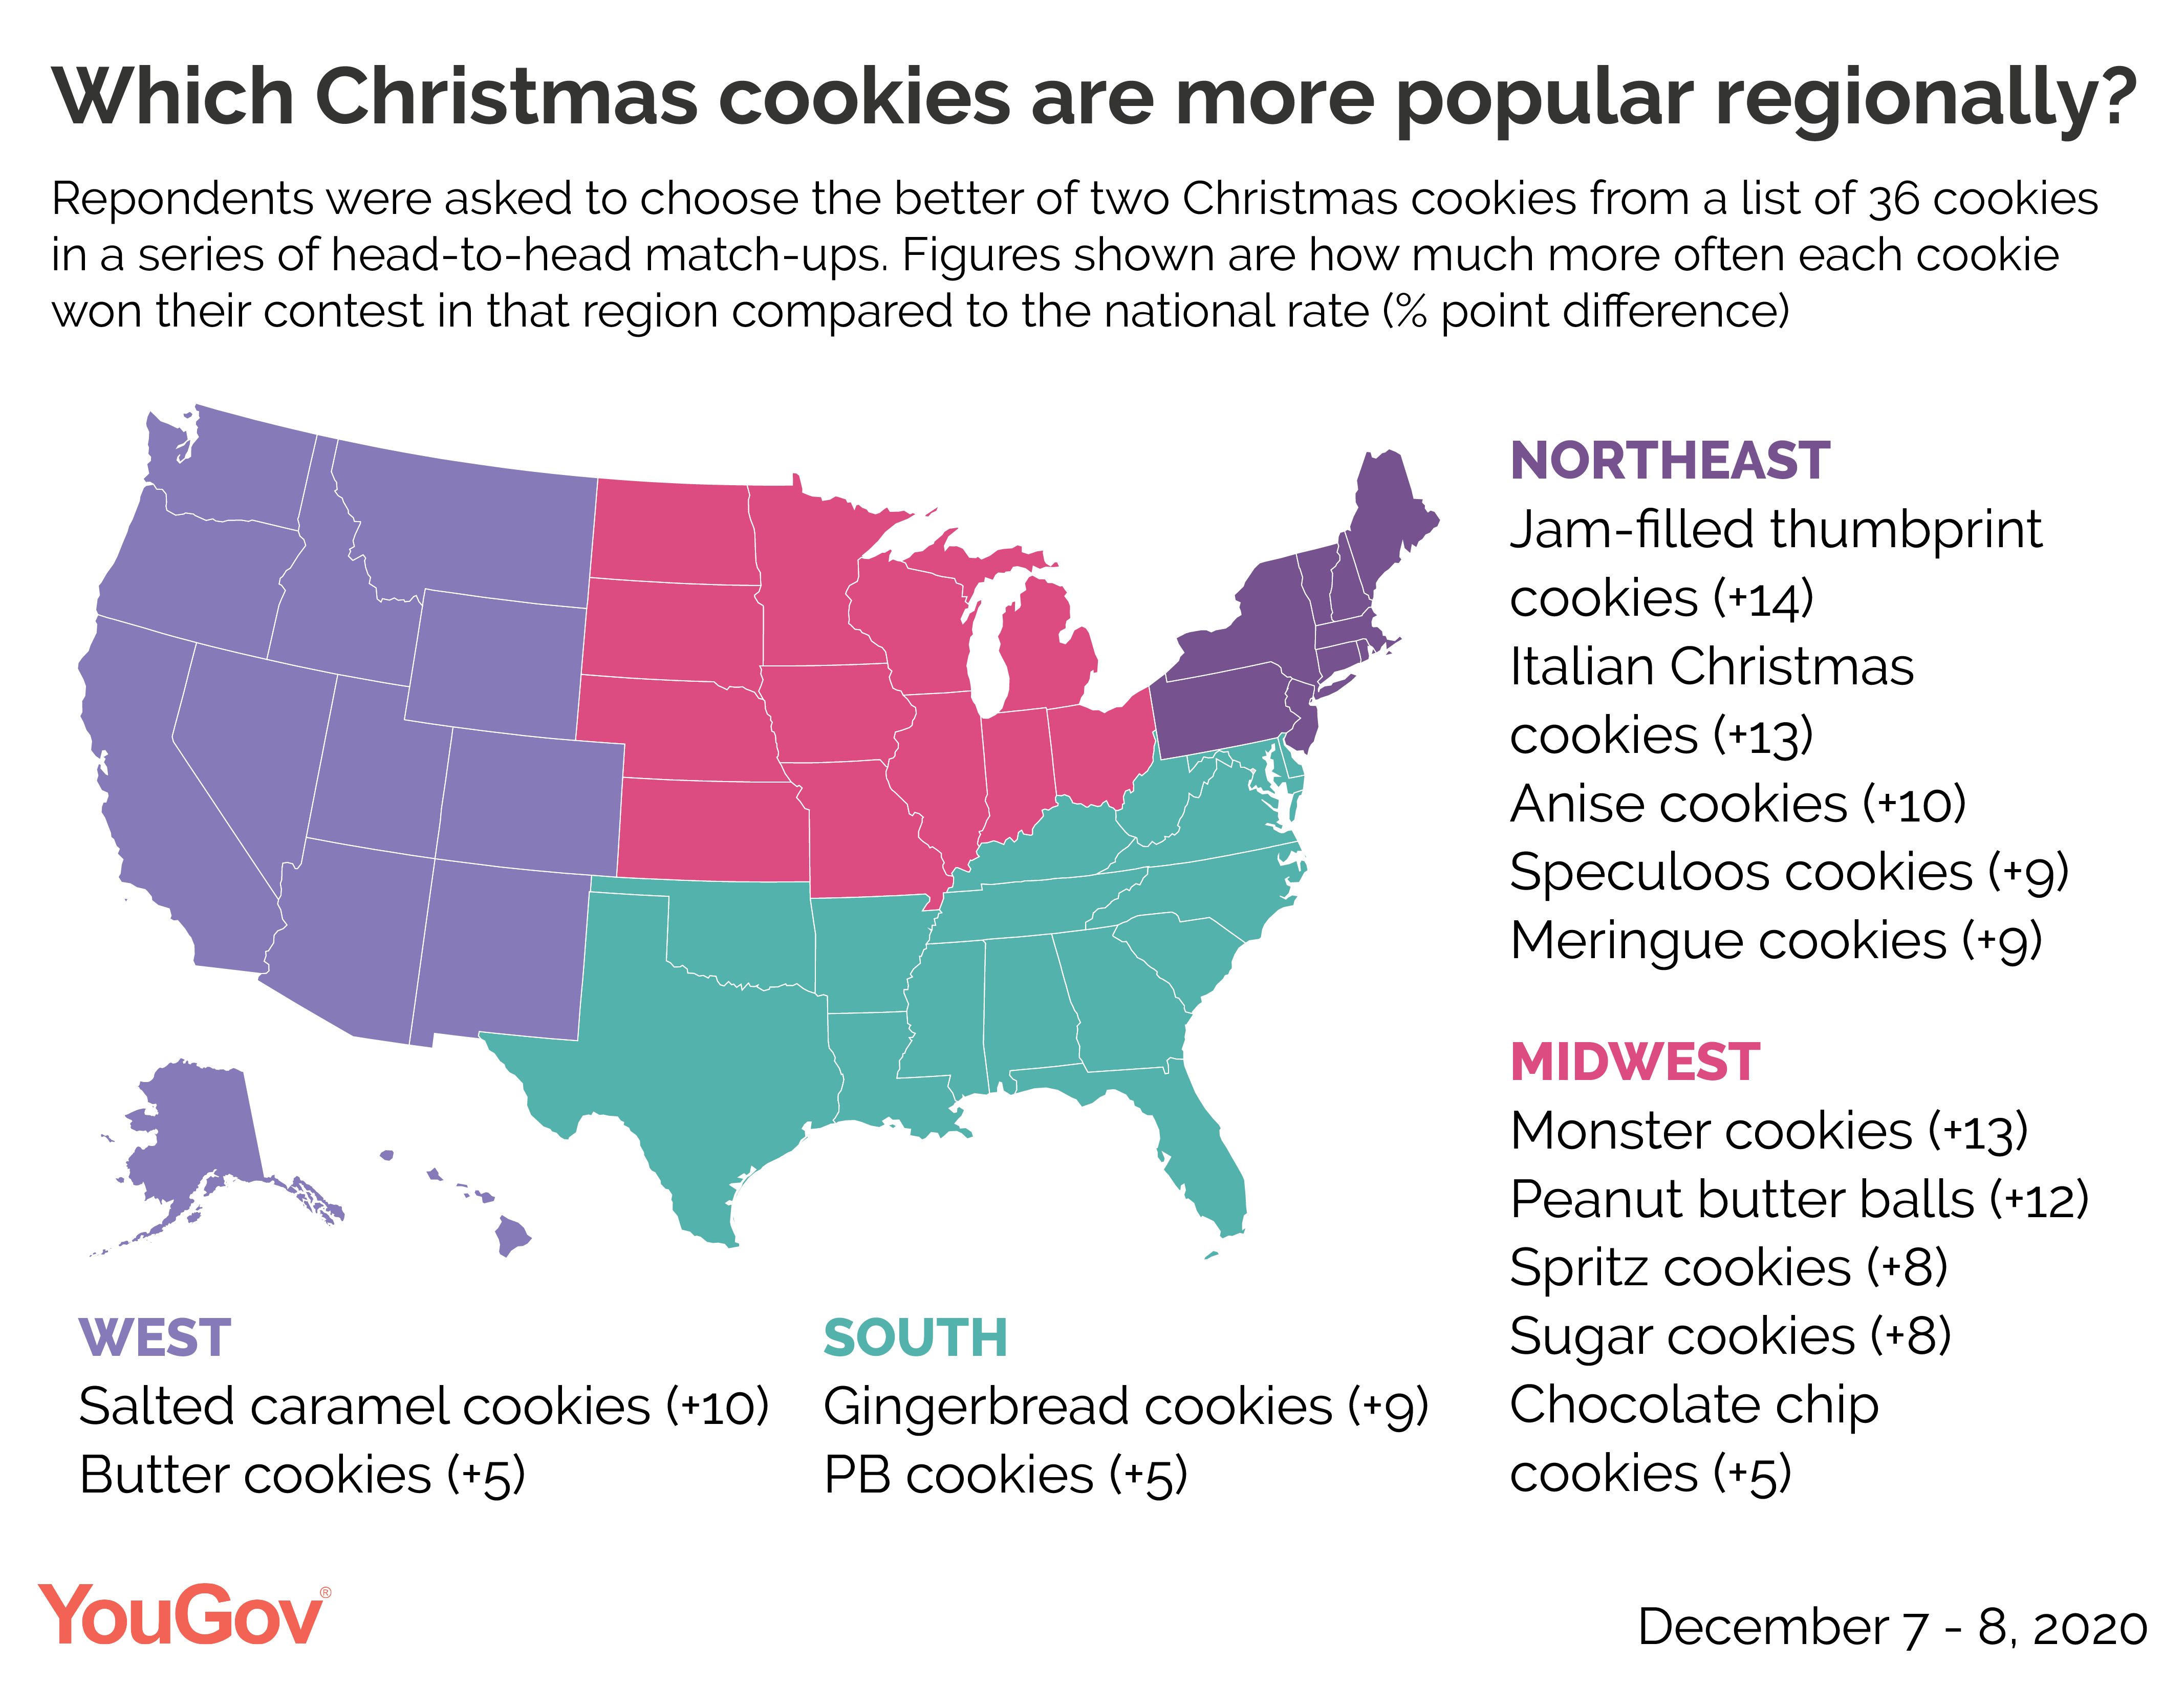 Which Christmas cookies are more popular in certain regions